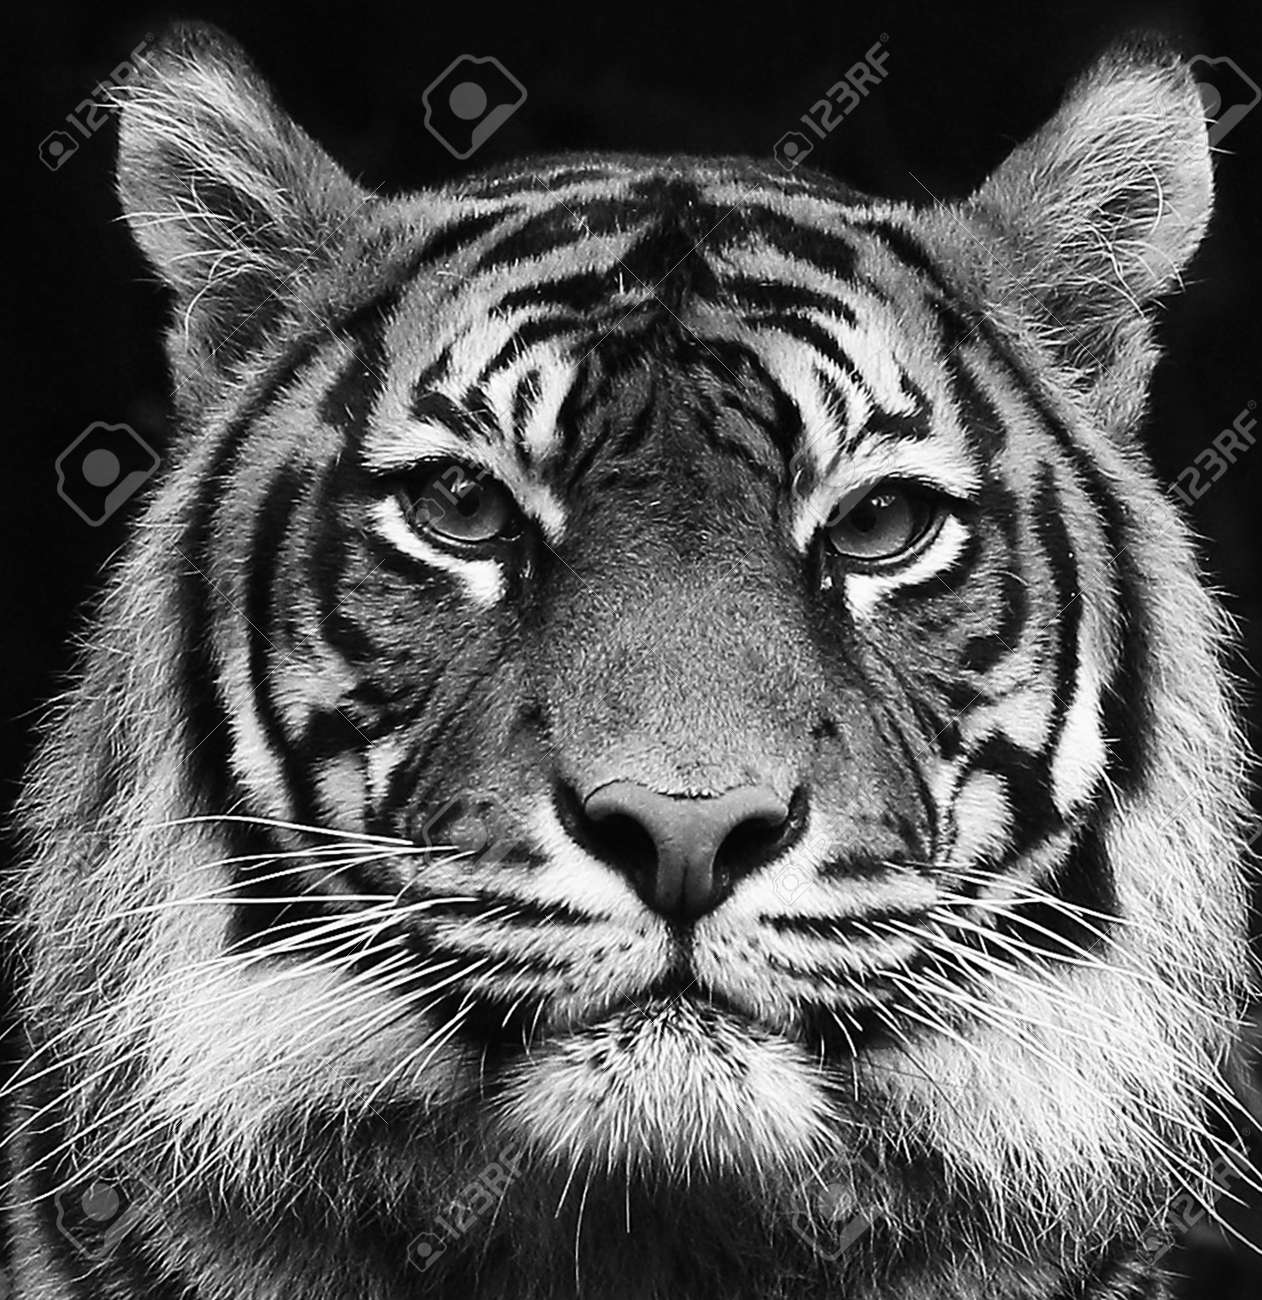 Black and white portrait of a beautiful Siberian tiger with high contrast - 145800717